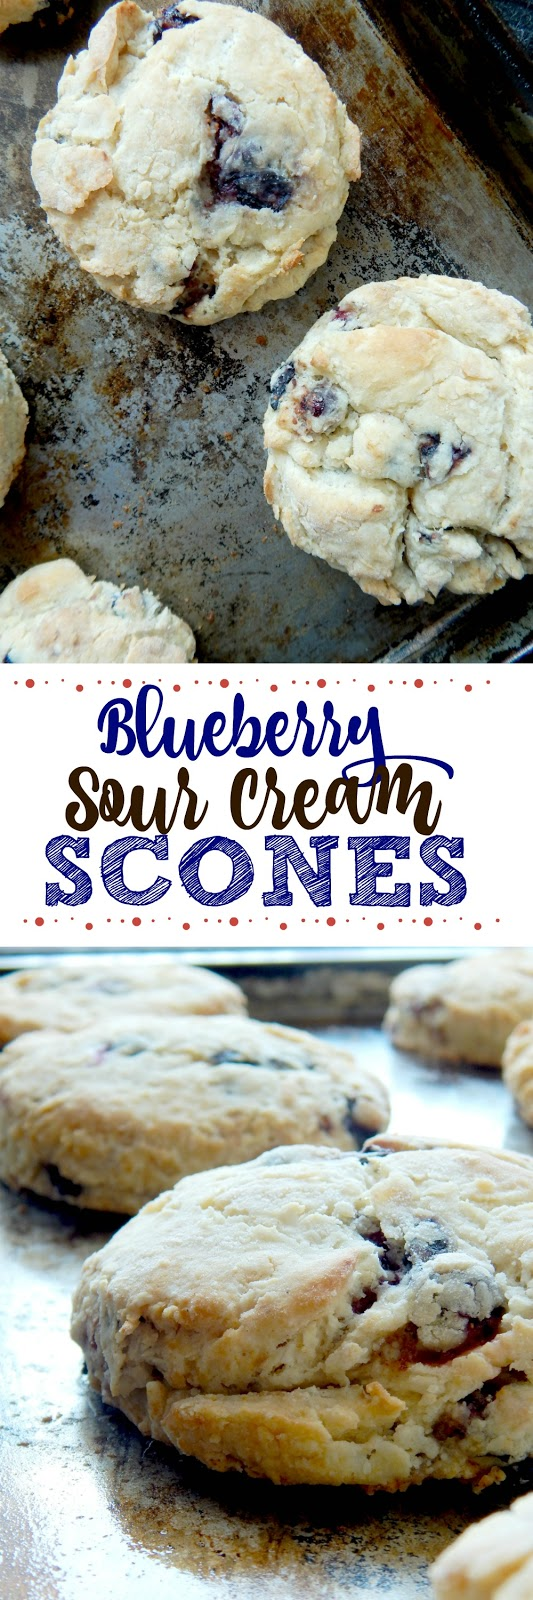 Blueberry Sour Cream Scones...soft, buttery and rich!  Plus the addition of fresh blueberries give them a juicy pop.  Easy to make and delicious to eat! (sweetandsavoryfood.com)